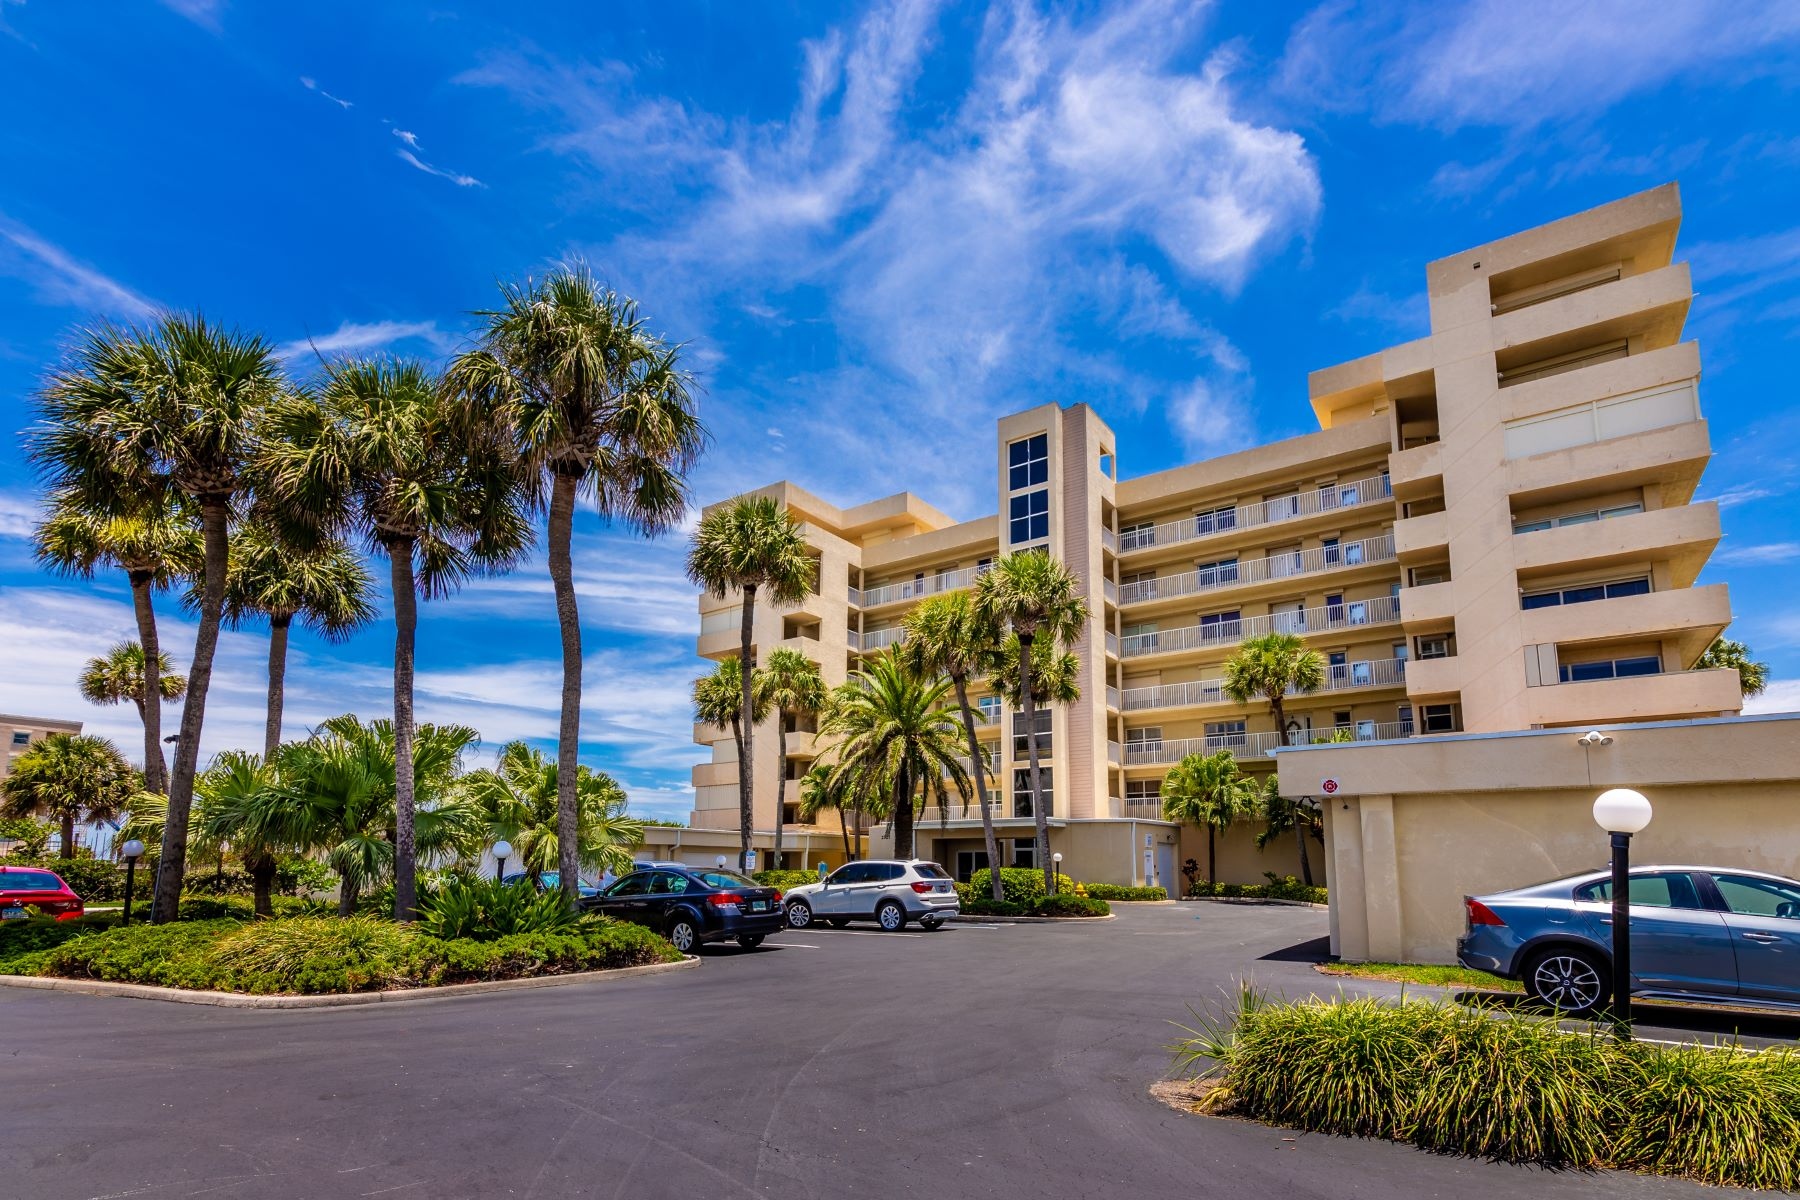 Condominiums for Sale at Ocean Sands North 2727 N Highway A1A 303 Indialantic, Florida 32903 United States